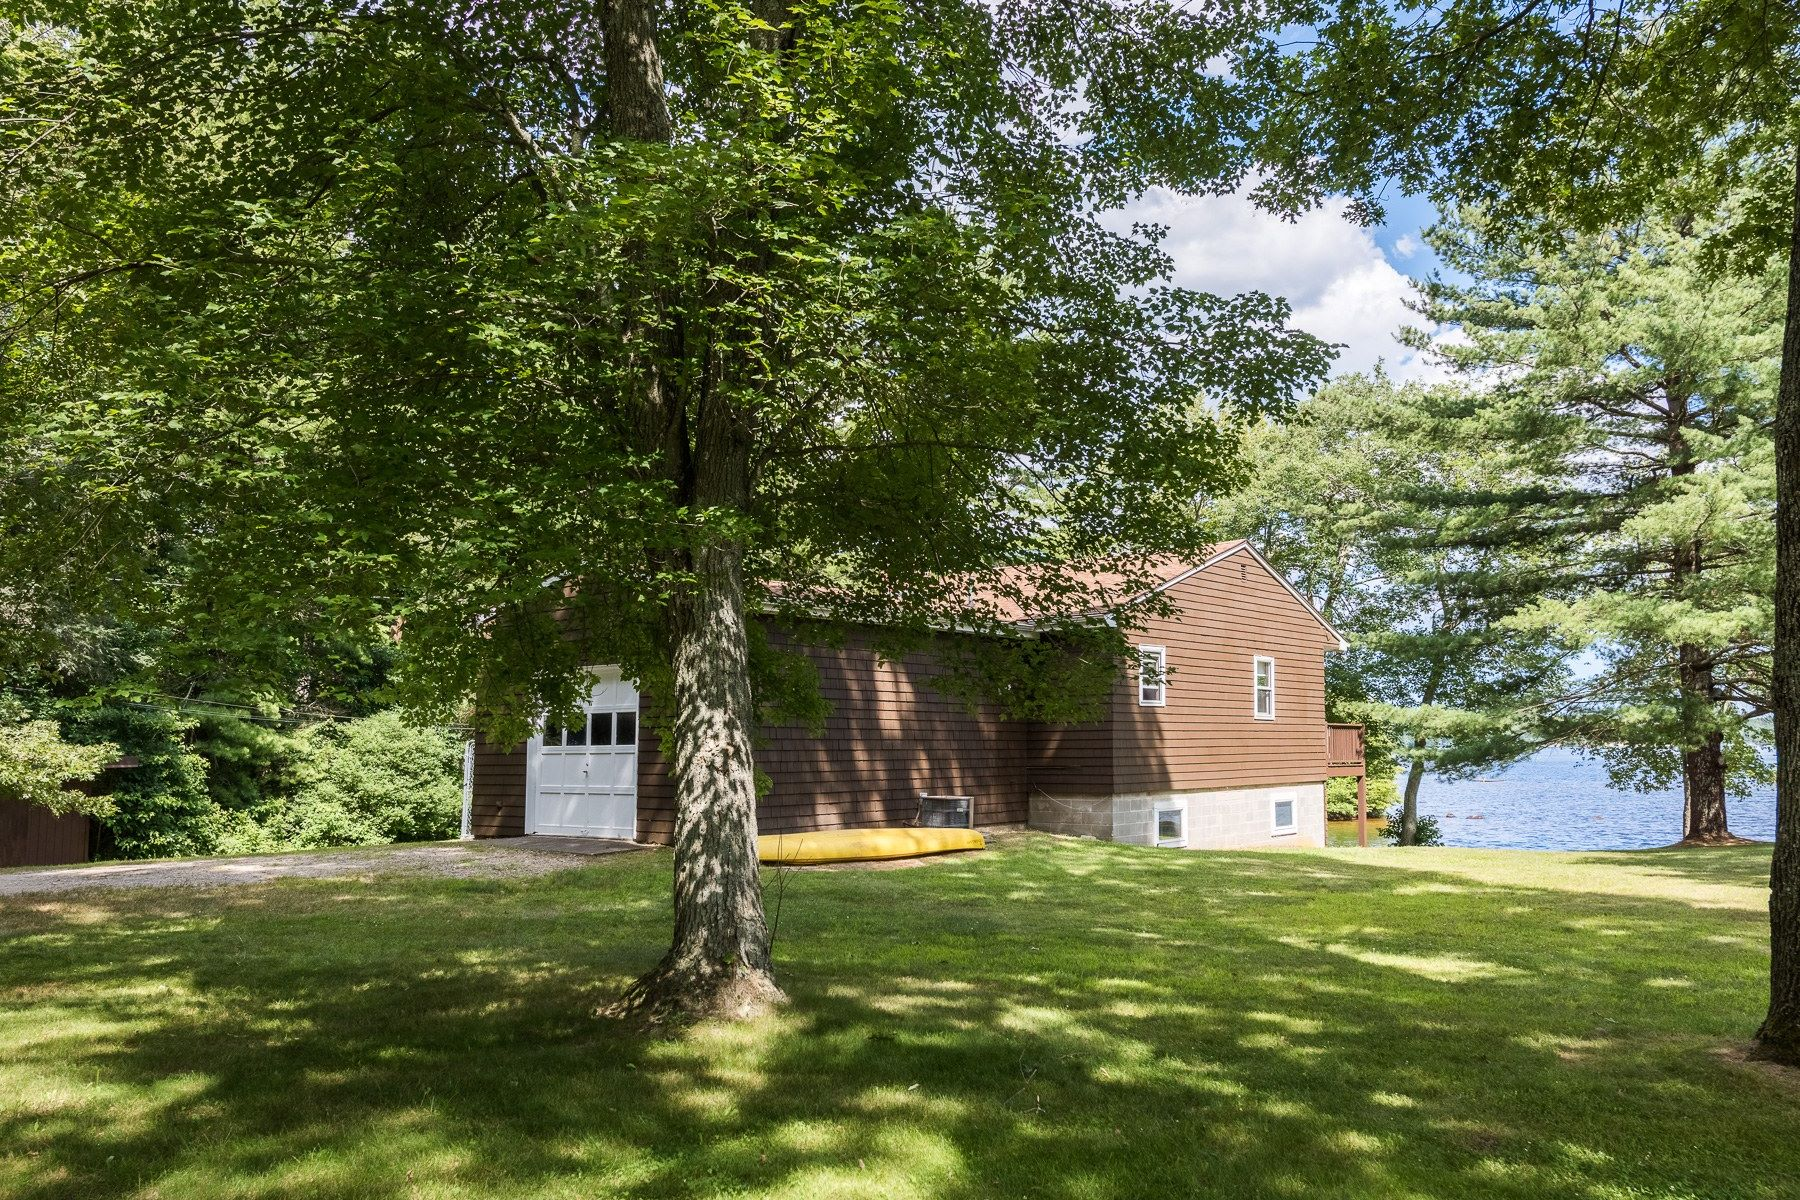 for Sale at 118 - 140 N Shore Rd., Voluntown, CT 118 - 140 N Shore Rd. Voluntown, Connecticut 06384 United States